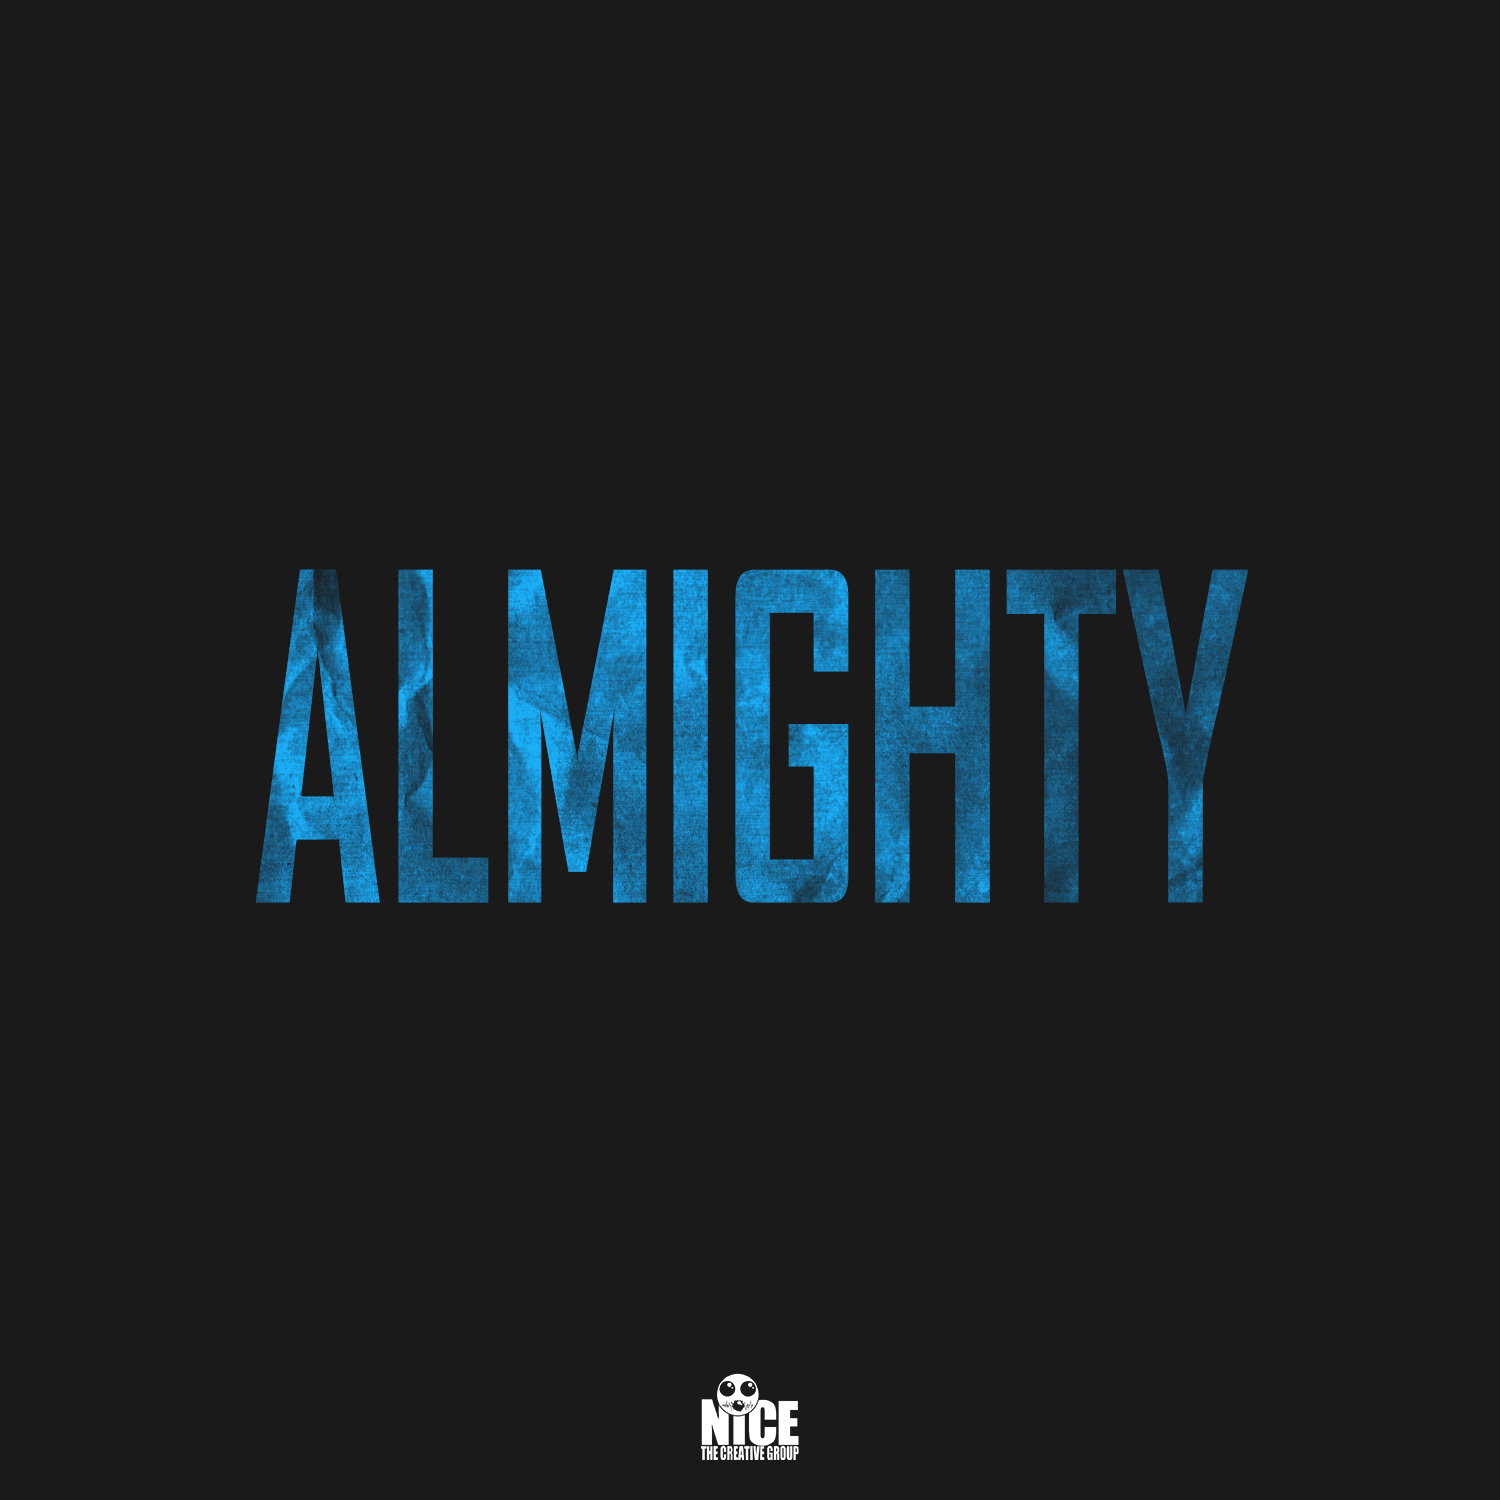 Almighty - Download Music Loops, Sample Packs, VST Presets & Libraries,  Drumkits, Construction kits, Royalty Free